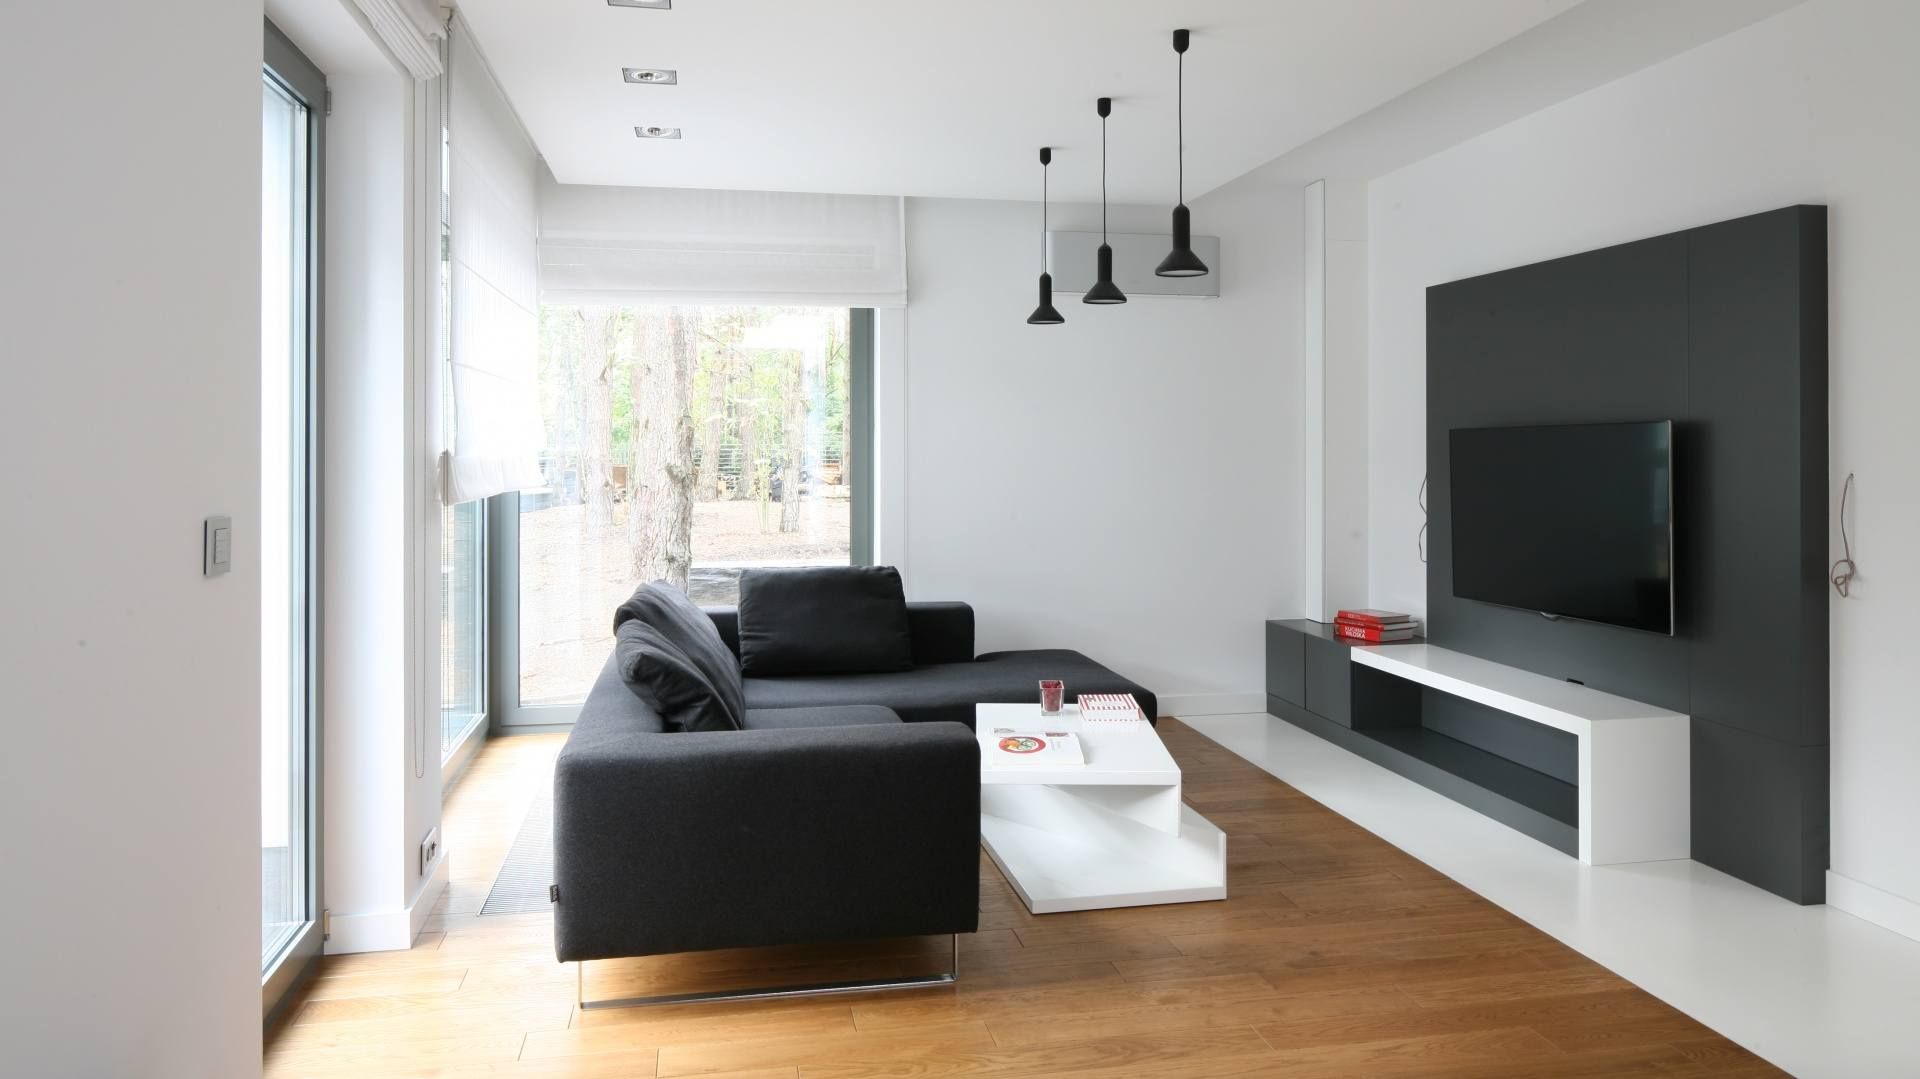 Black Sofa: Elegant and Original Design for Flawless Interior. Nice modern design of the room with black lamps in the living zone